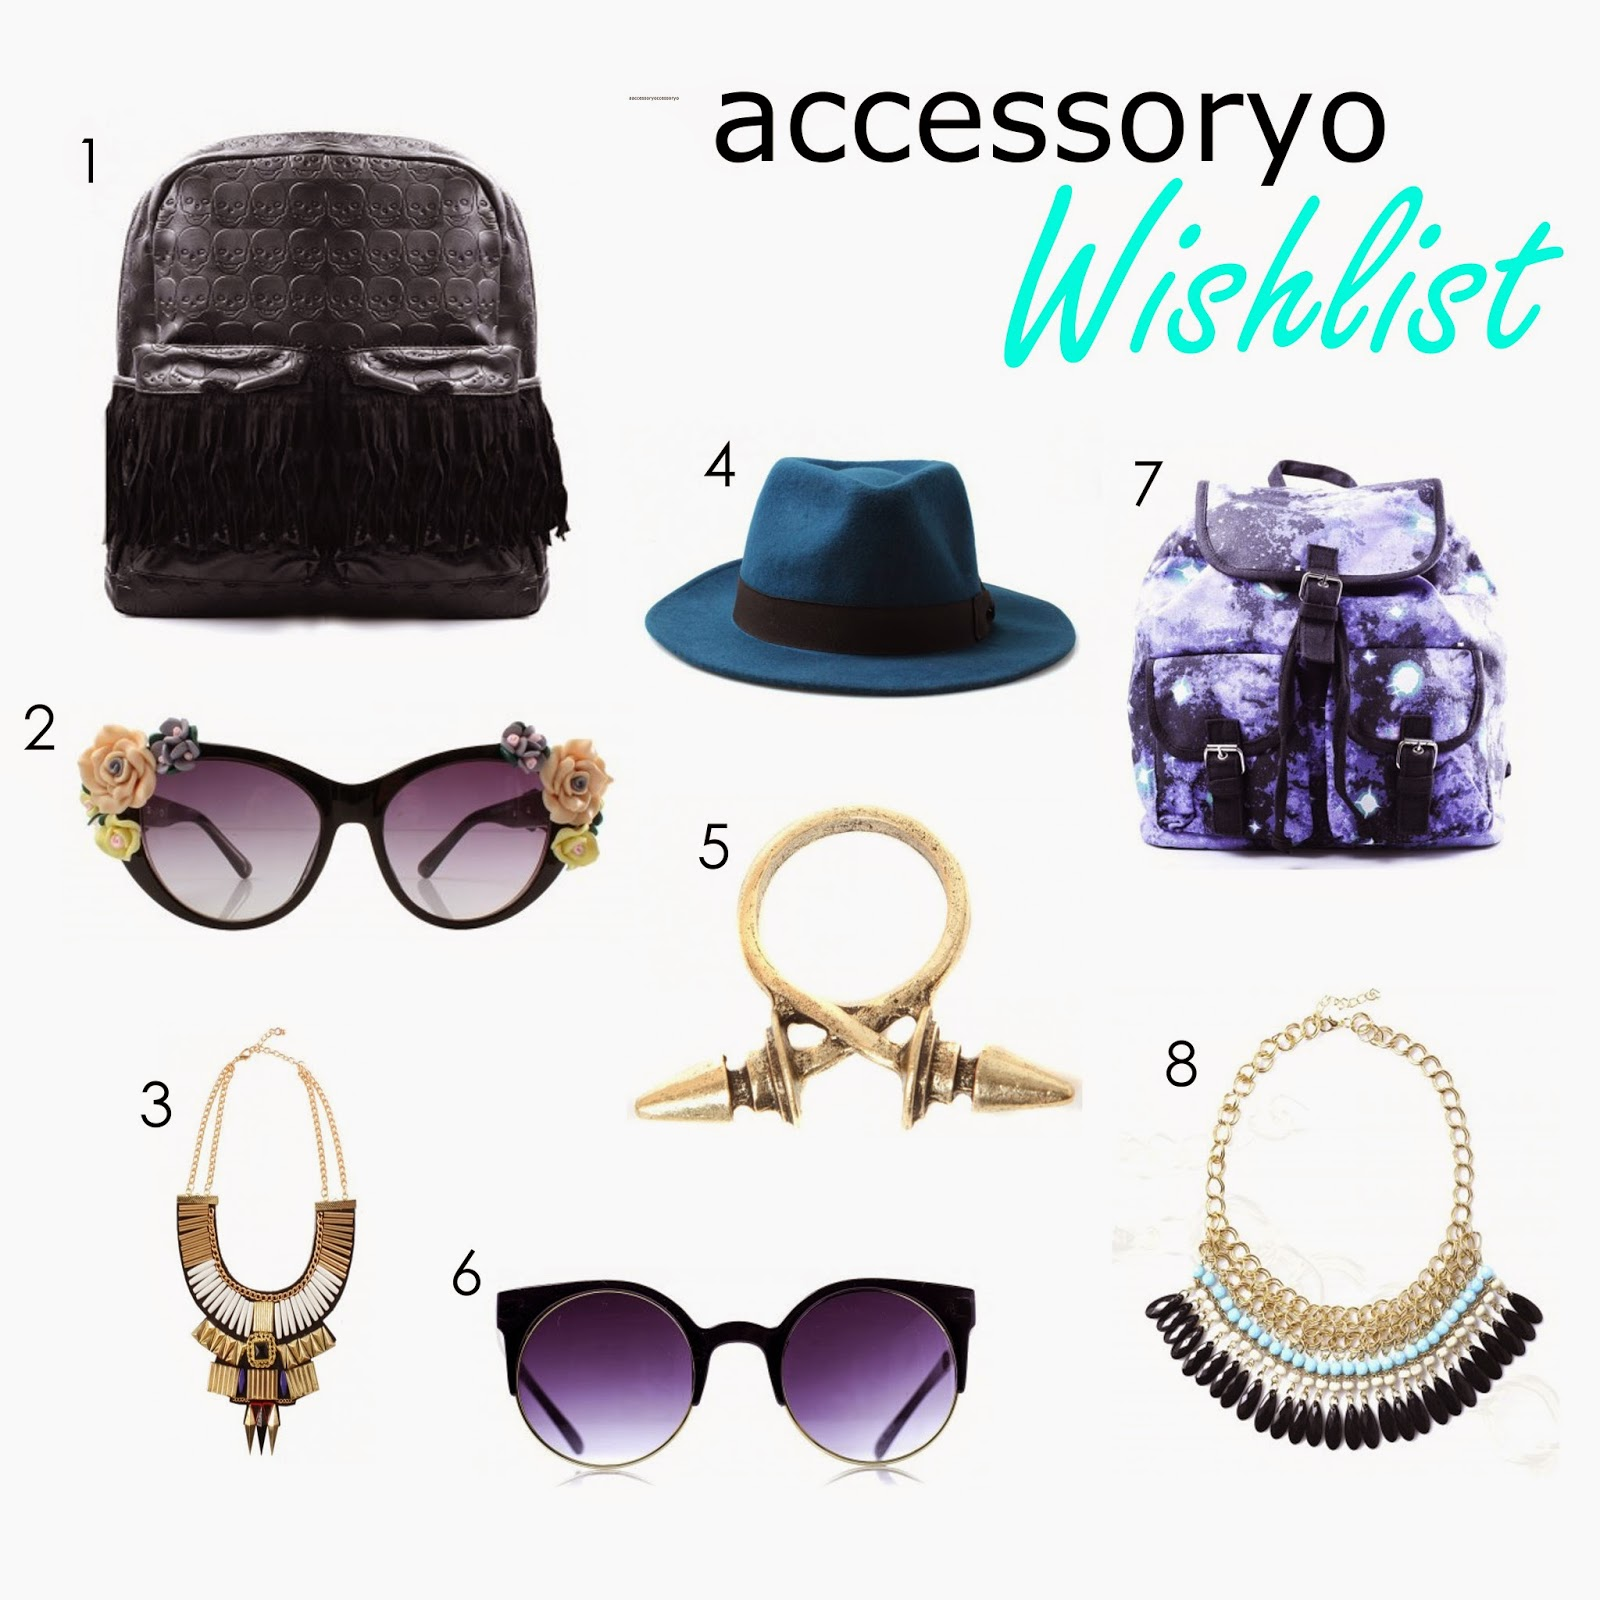 accessoryo, accessories, cat eye sunglasses, statement necklace, alternative girl, alternative fashion, alternative style, hipster, indie, hipster fashion, indie fashion, backpack